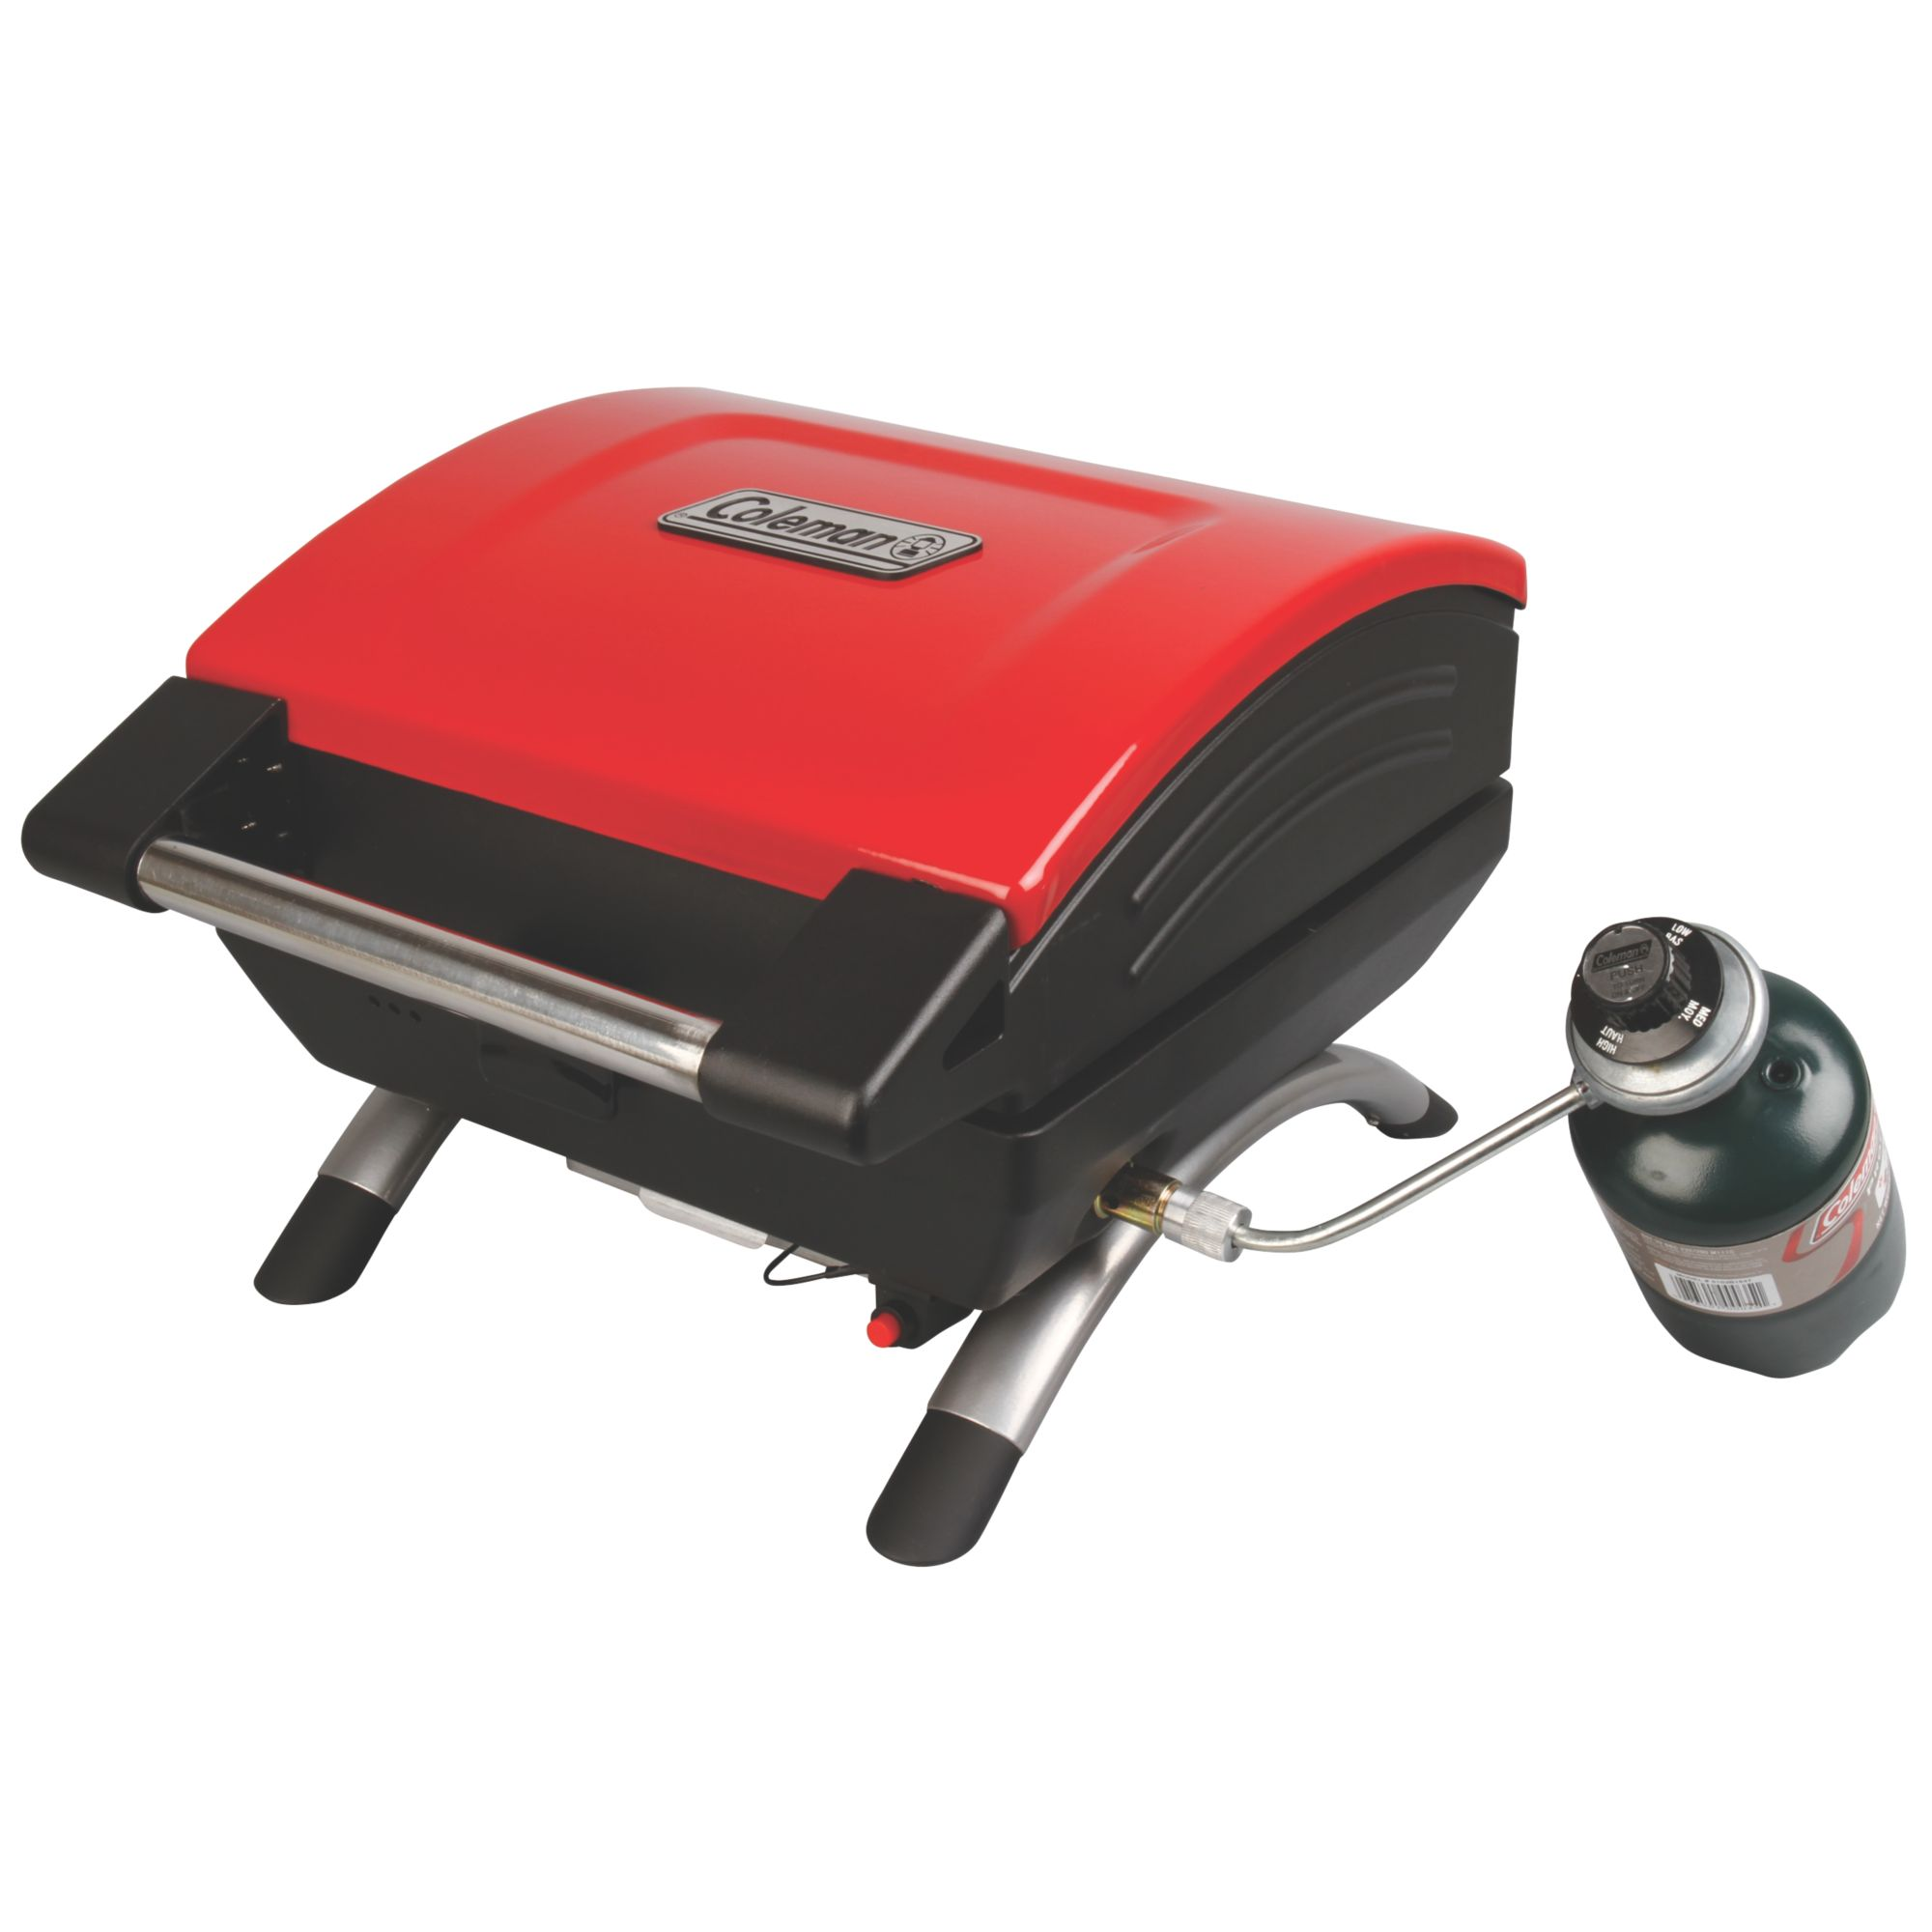 Nxt Lite Table Top Grill Coleman